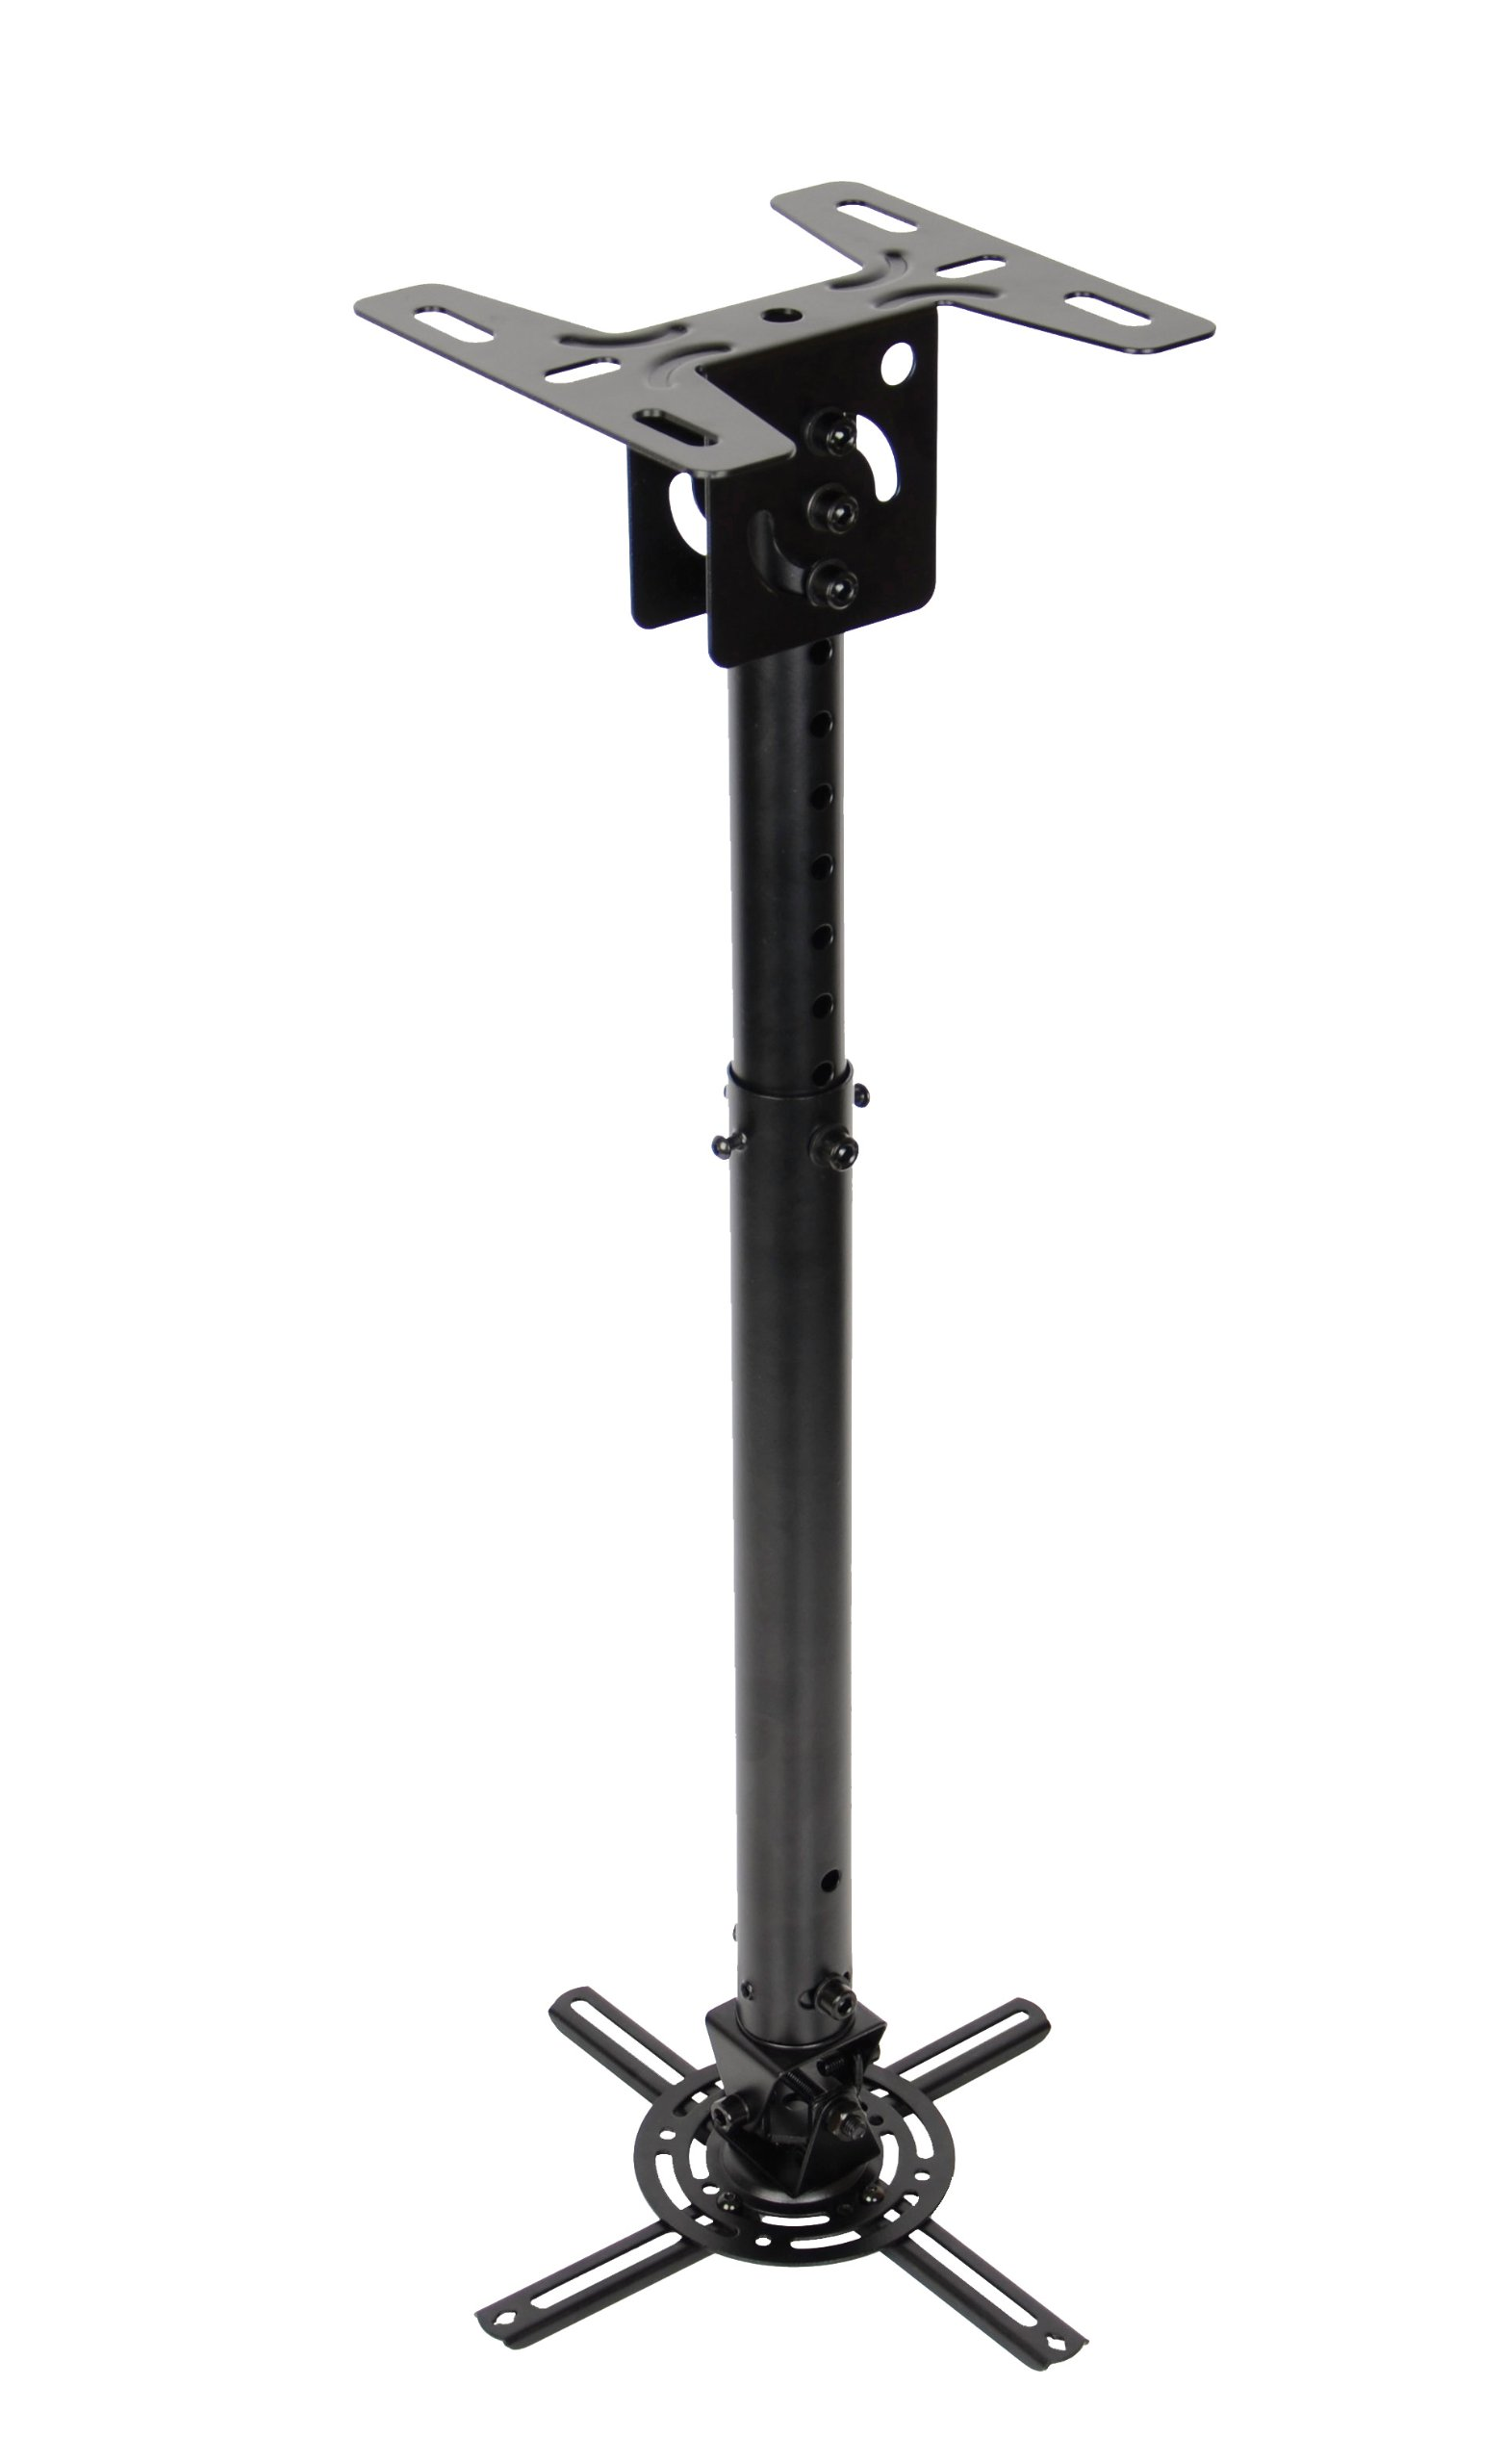 OPTOMA Technology OCM815B Low Profile Universal Ceiling Mount with Extension Poles Projector Accessory by Optoma